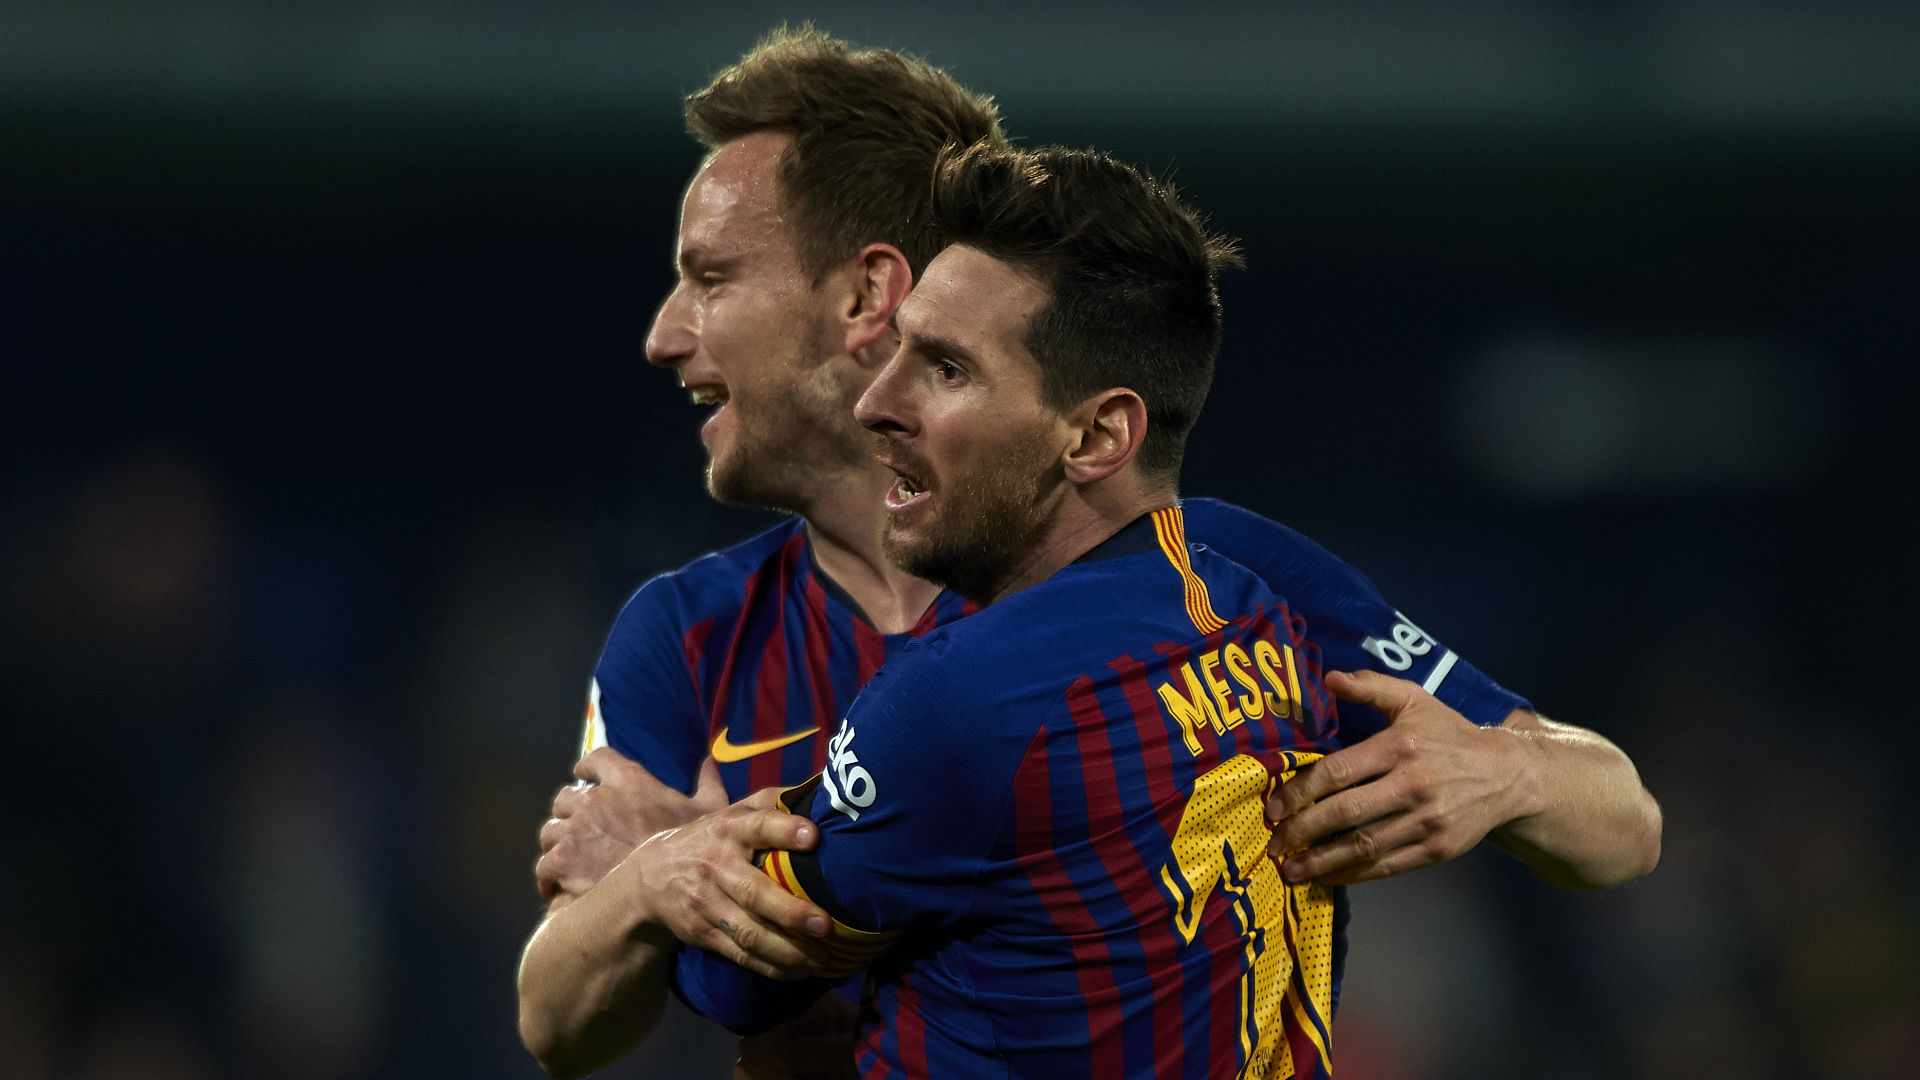 'Barcelona is always the first and best option' - Rakitic offers future advice to Messi